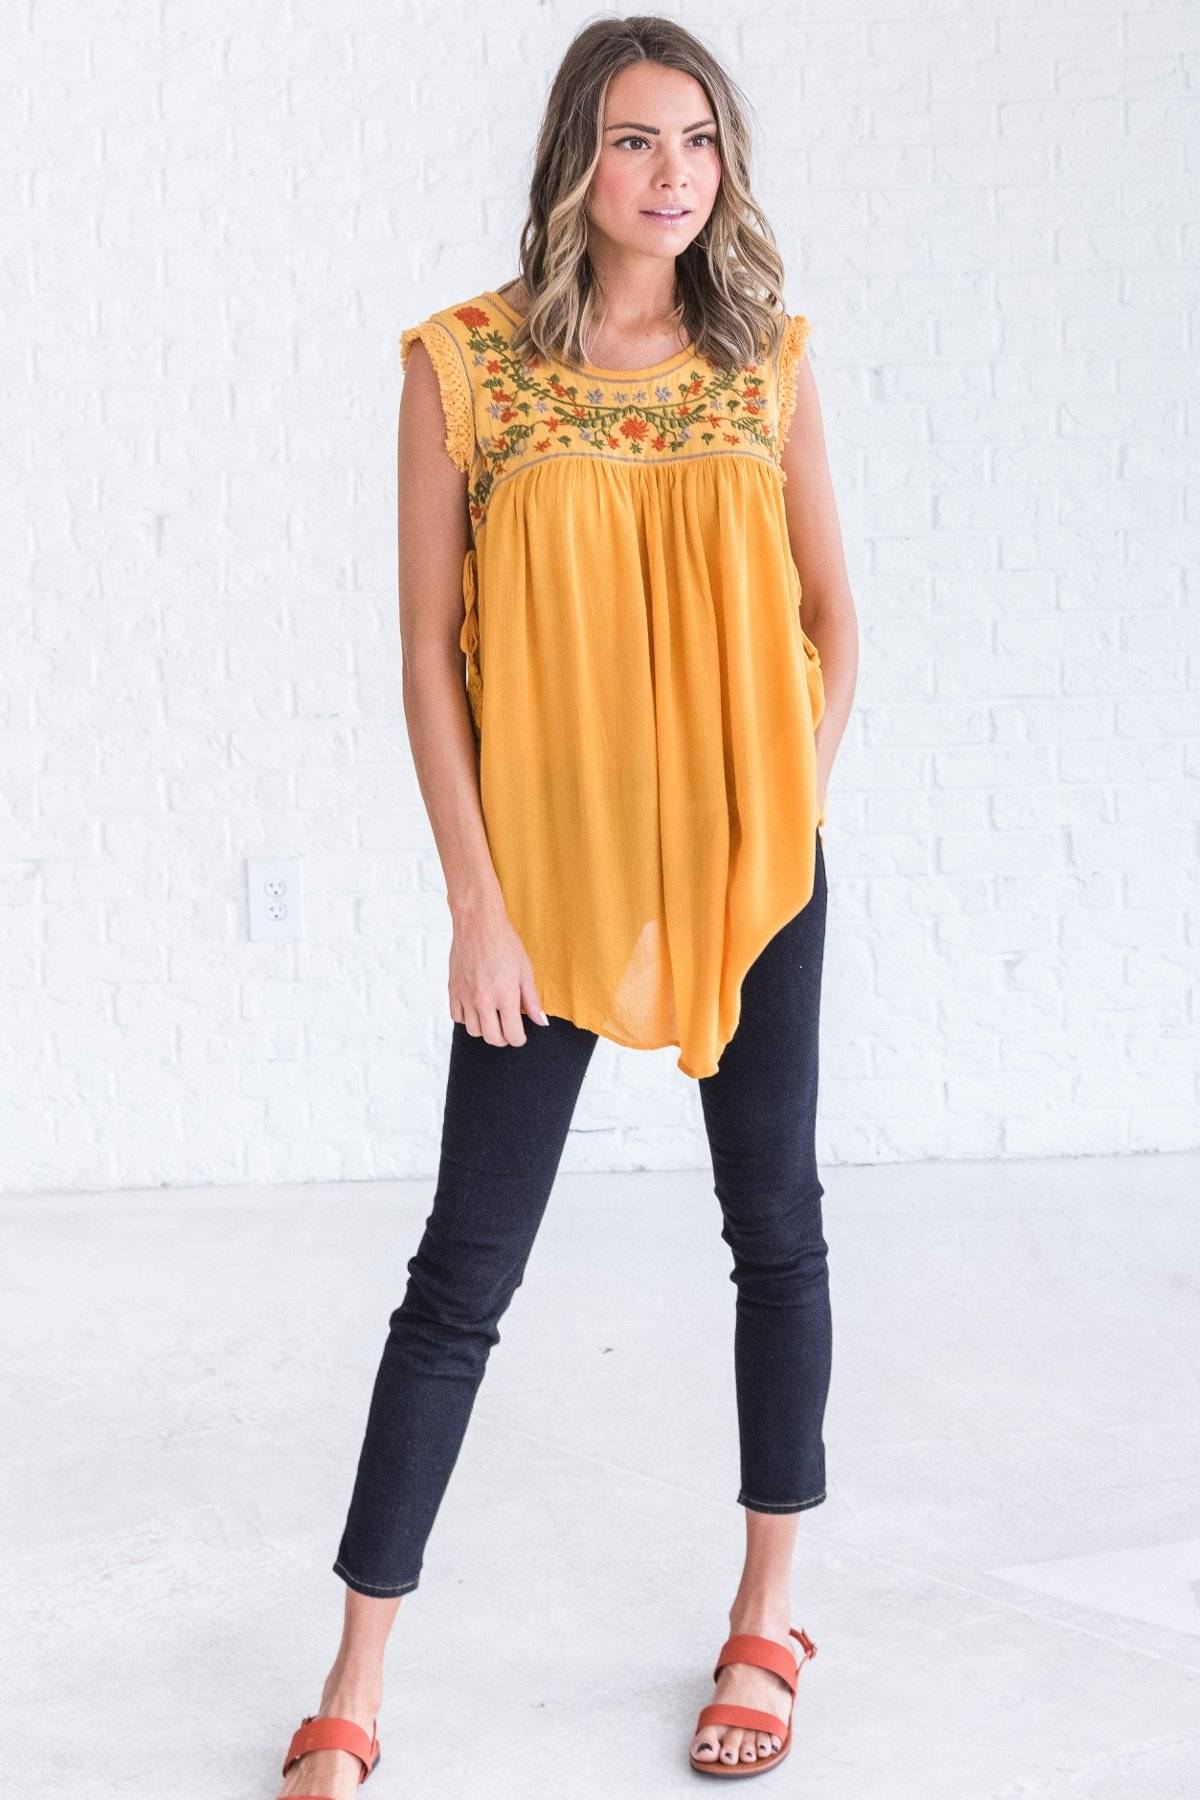 yellow spring top with flowers from bella ella boutique